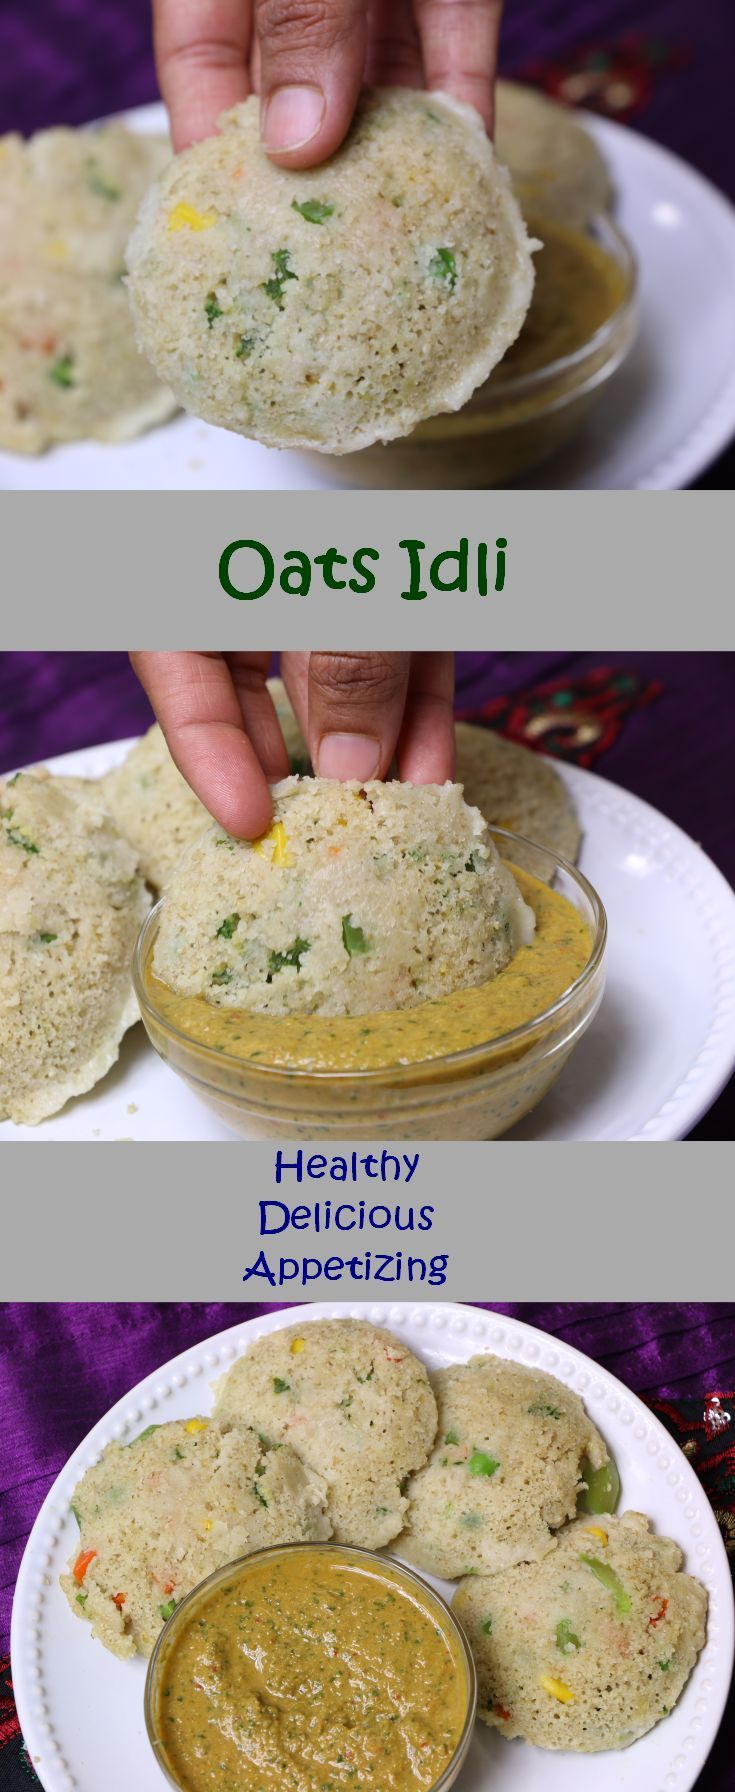 Instant Oats Idli is a healthy Indian Breakfast recipe, which is a very appetizing and easy to make. This is the best way to include oats in your diet. I have added many vegetables like carrots, green peas, beans, bell pepper...... But you can add your choice of vegetables or you can skip this step. My son love this Idli. This is perfect for school lunch box or for breakfast. I like to have it with coconut chutney.